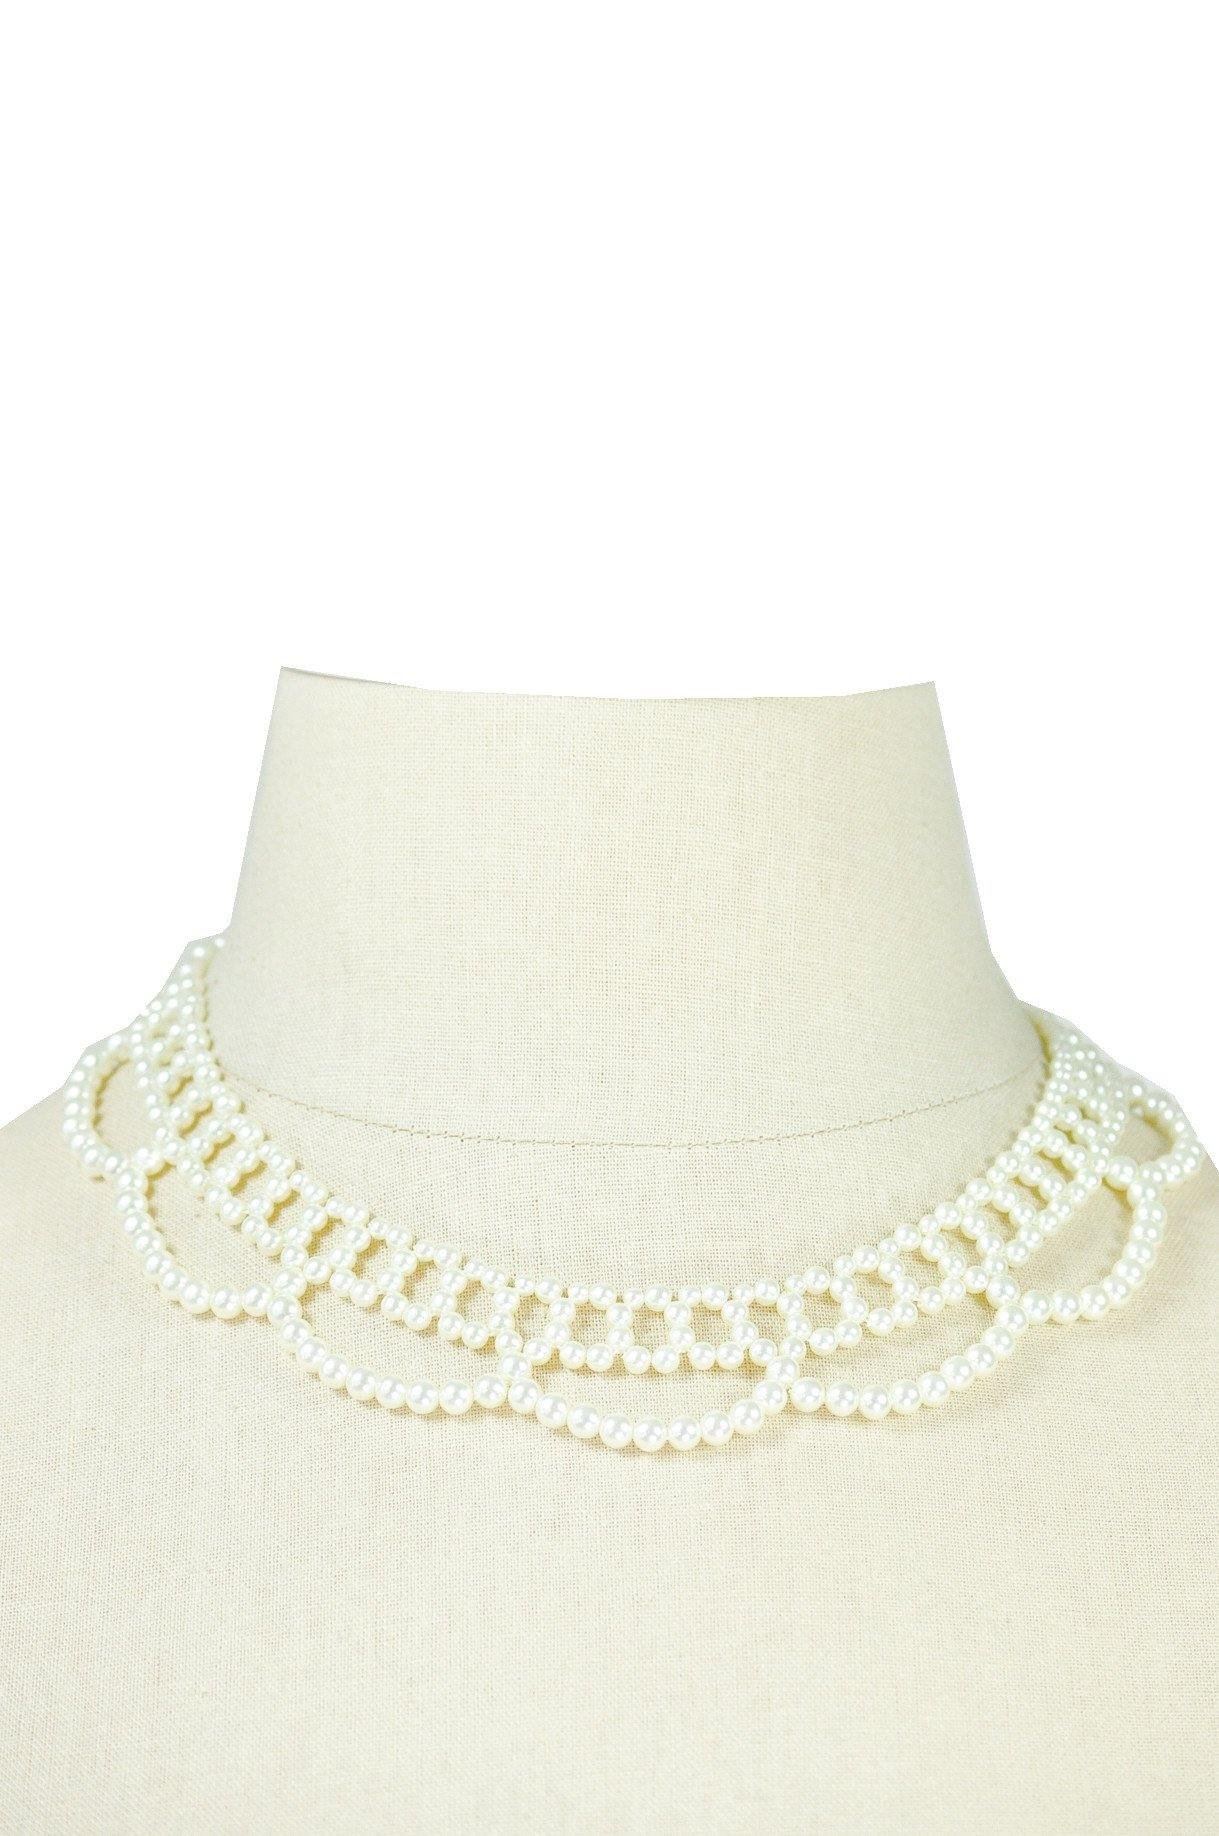 50's__Vintage__Choker Pearl Necklace